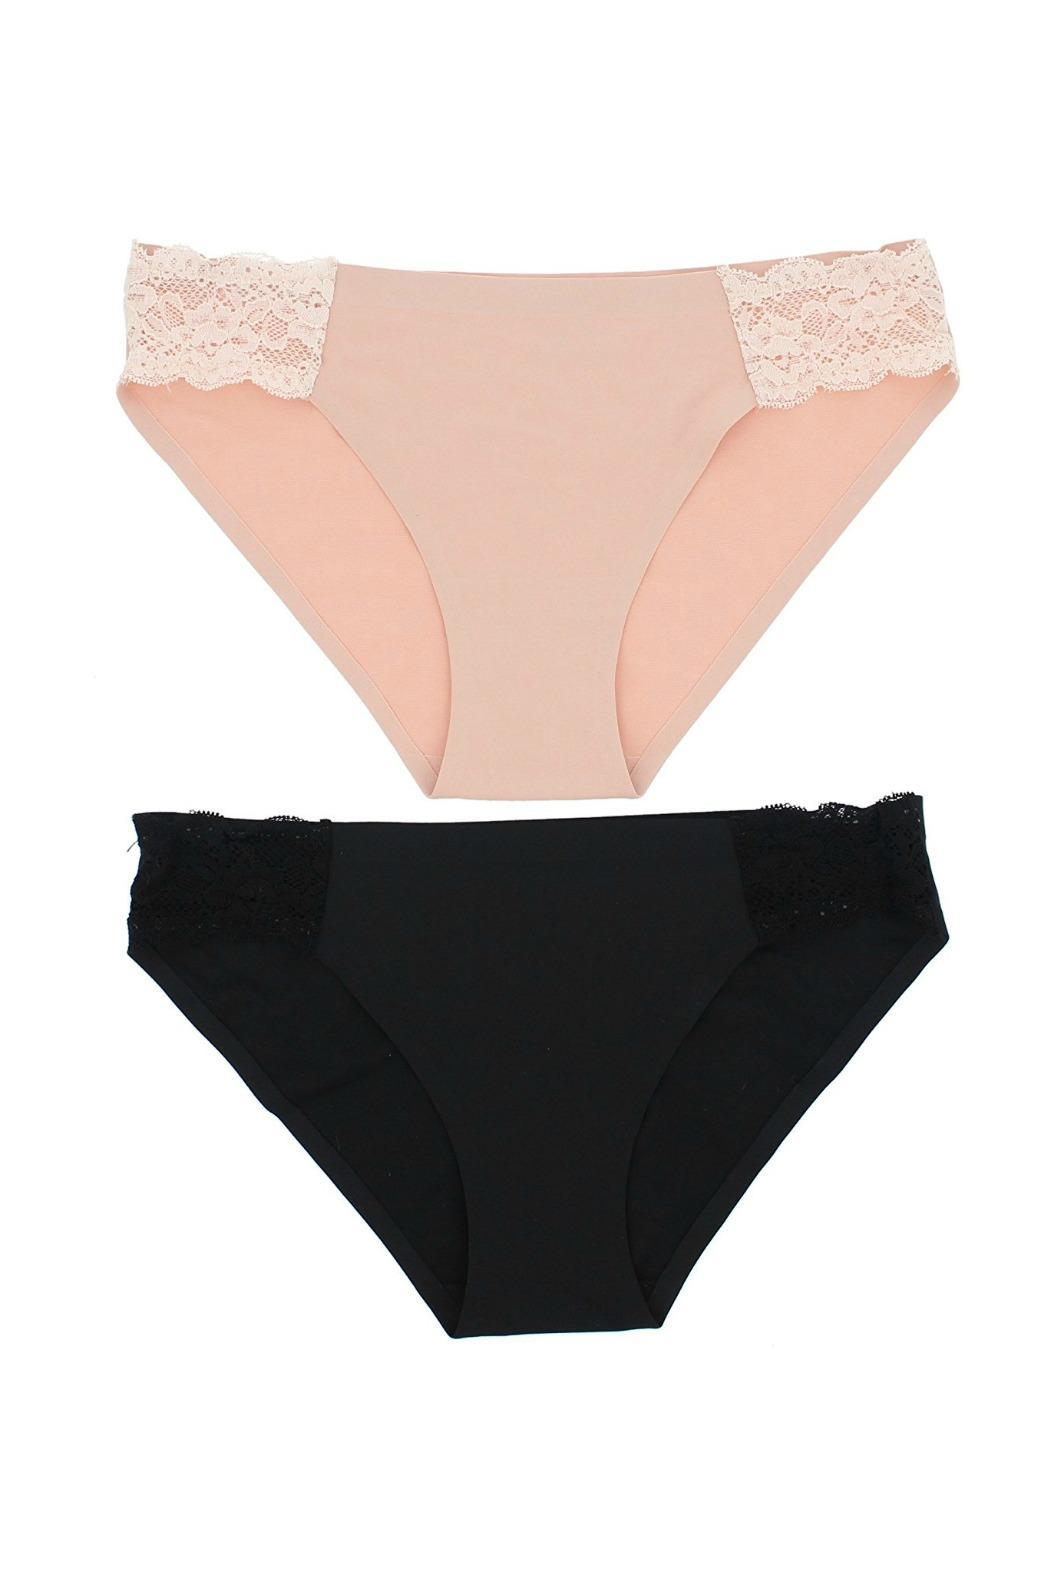 372f32cc7bae2 Marilyn Monroe Intimates Seamless Lace Panties Set - Front Cropped Image